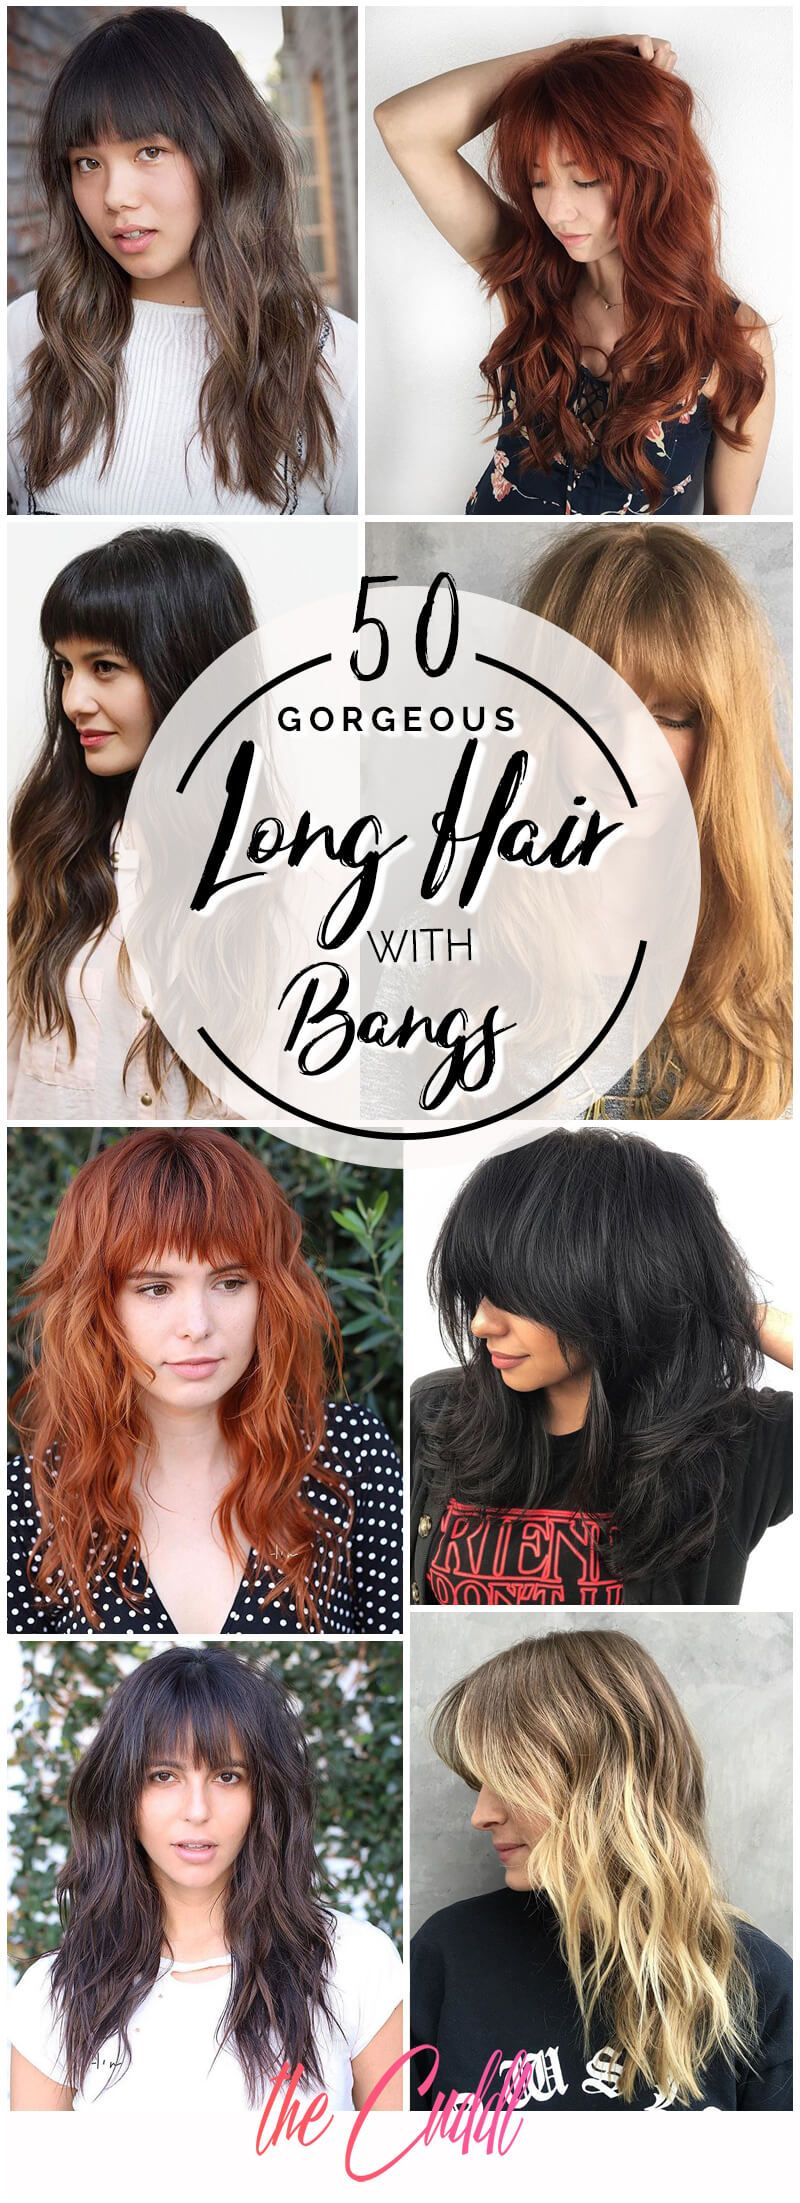 50 Fun Fresh Ways To Style Long Hair With Bangs Long Hair With Bangs Hairstyles With Bangs Thick Hair Styles